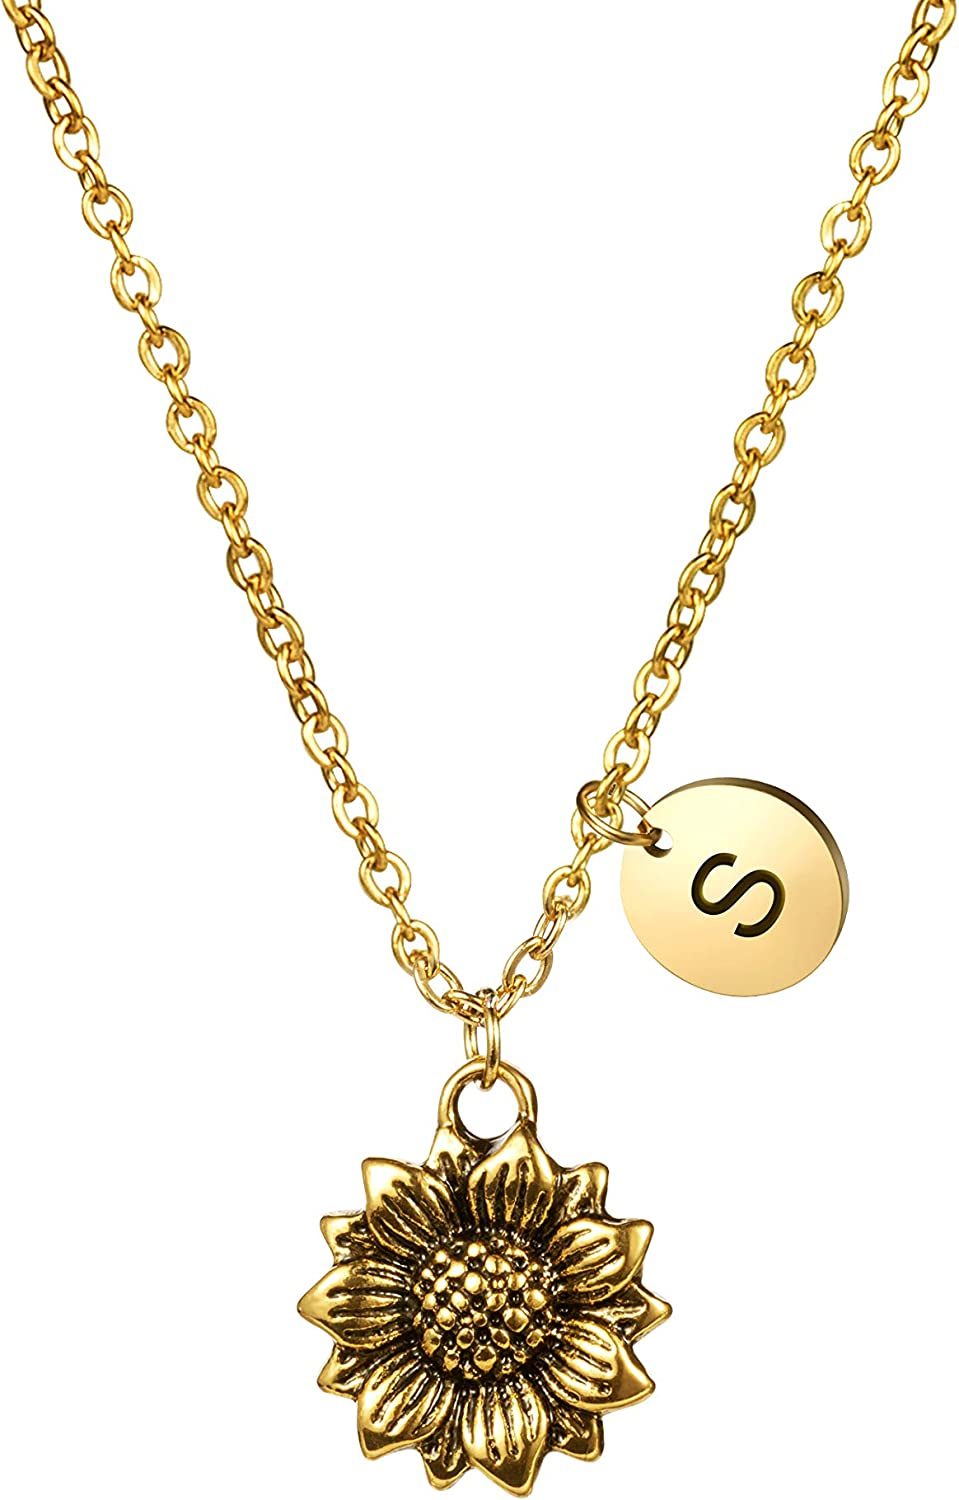 JoycuFF Dainty Antique Gold Sunflower Necklace Personalized Cute Monogram Pendant Initial Charm Letter Engraved Inspirational Gifts for Her Women Teen Girl